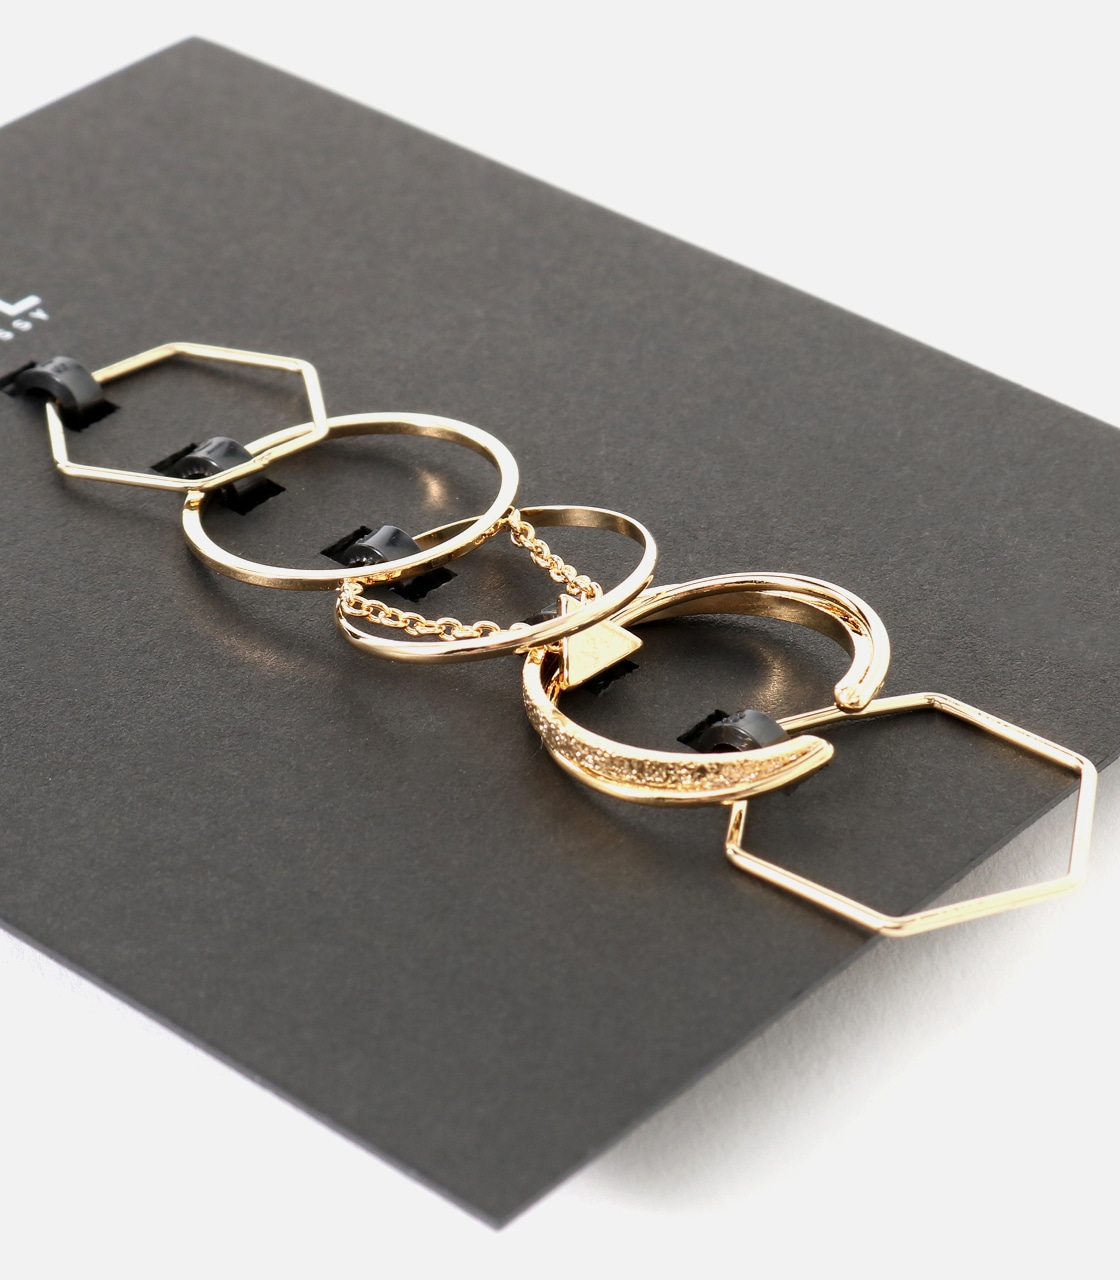 【AZUL BY MOUSSY】チェーンモチーフ5本SETリング 詳細画像 L/GLD 4